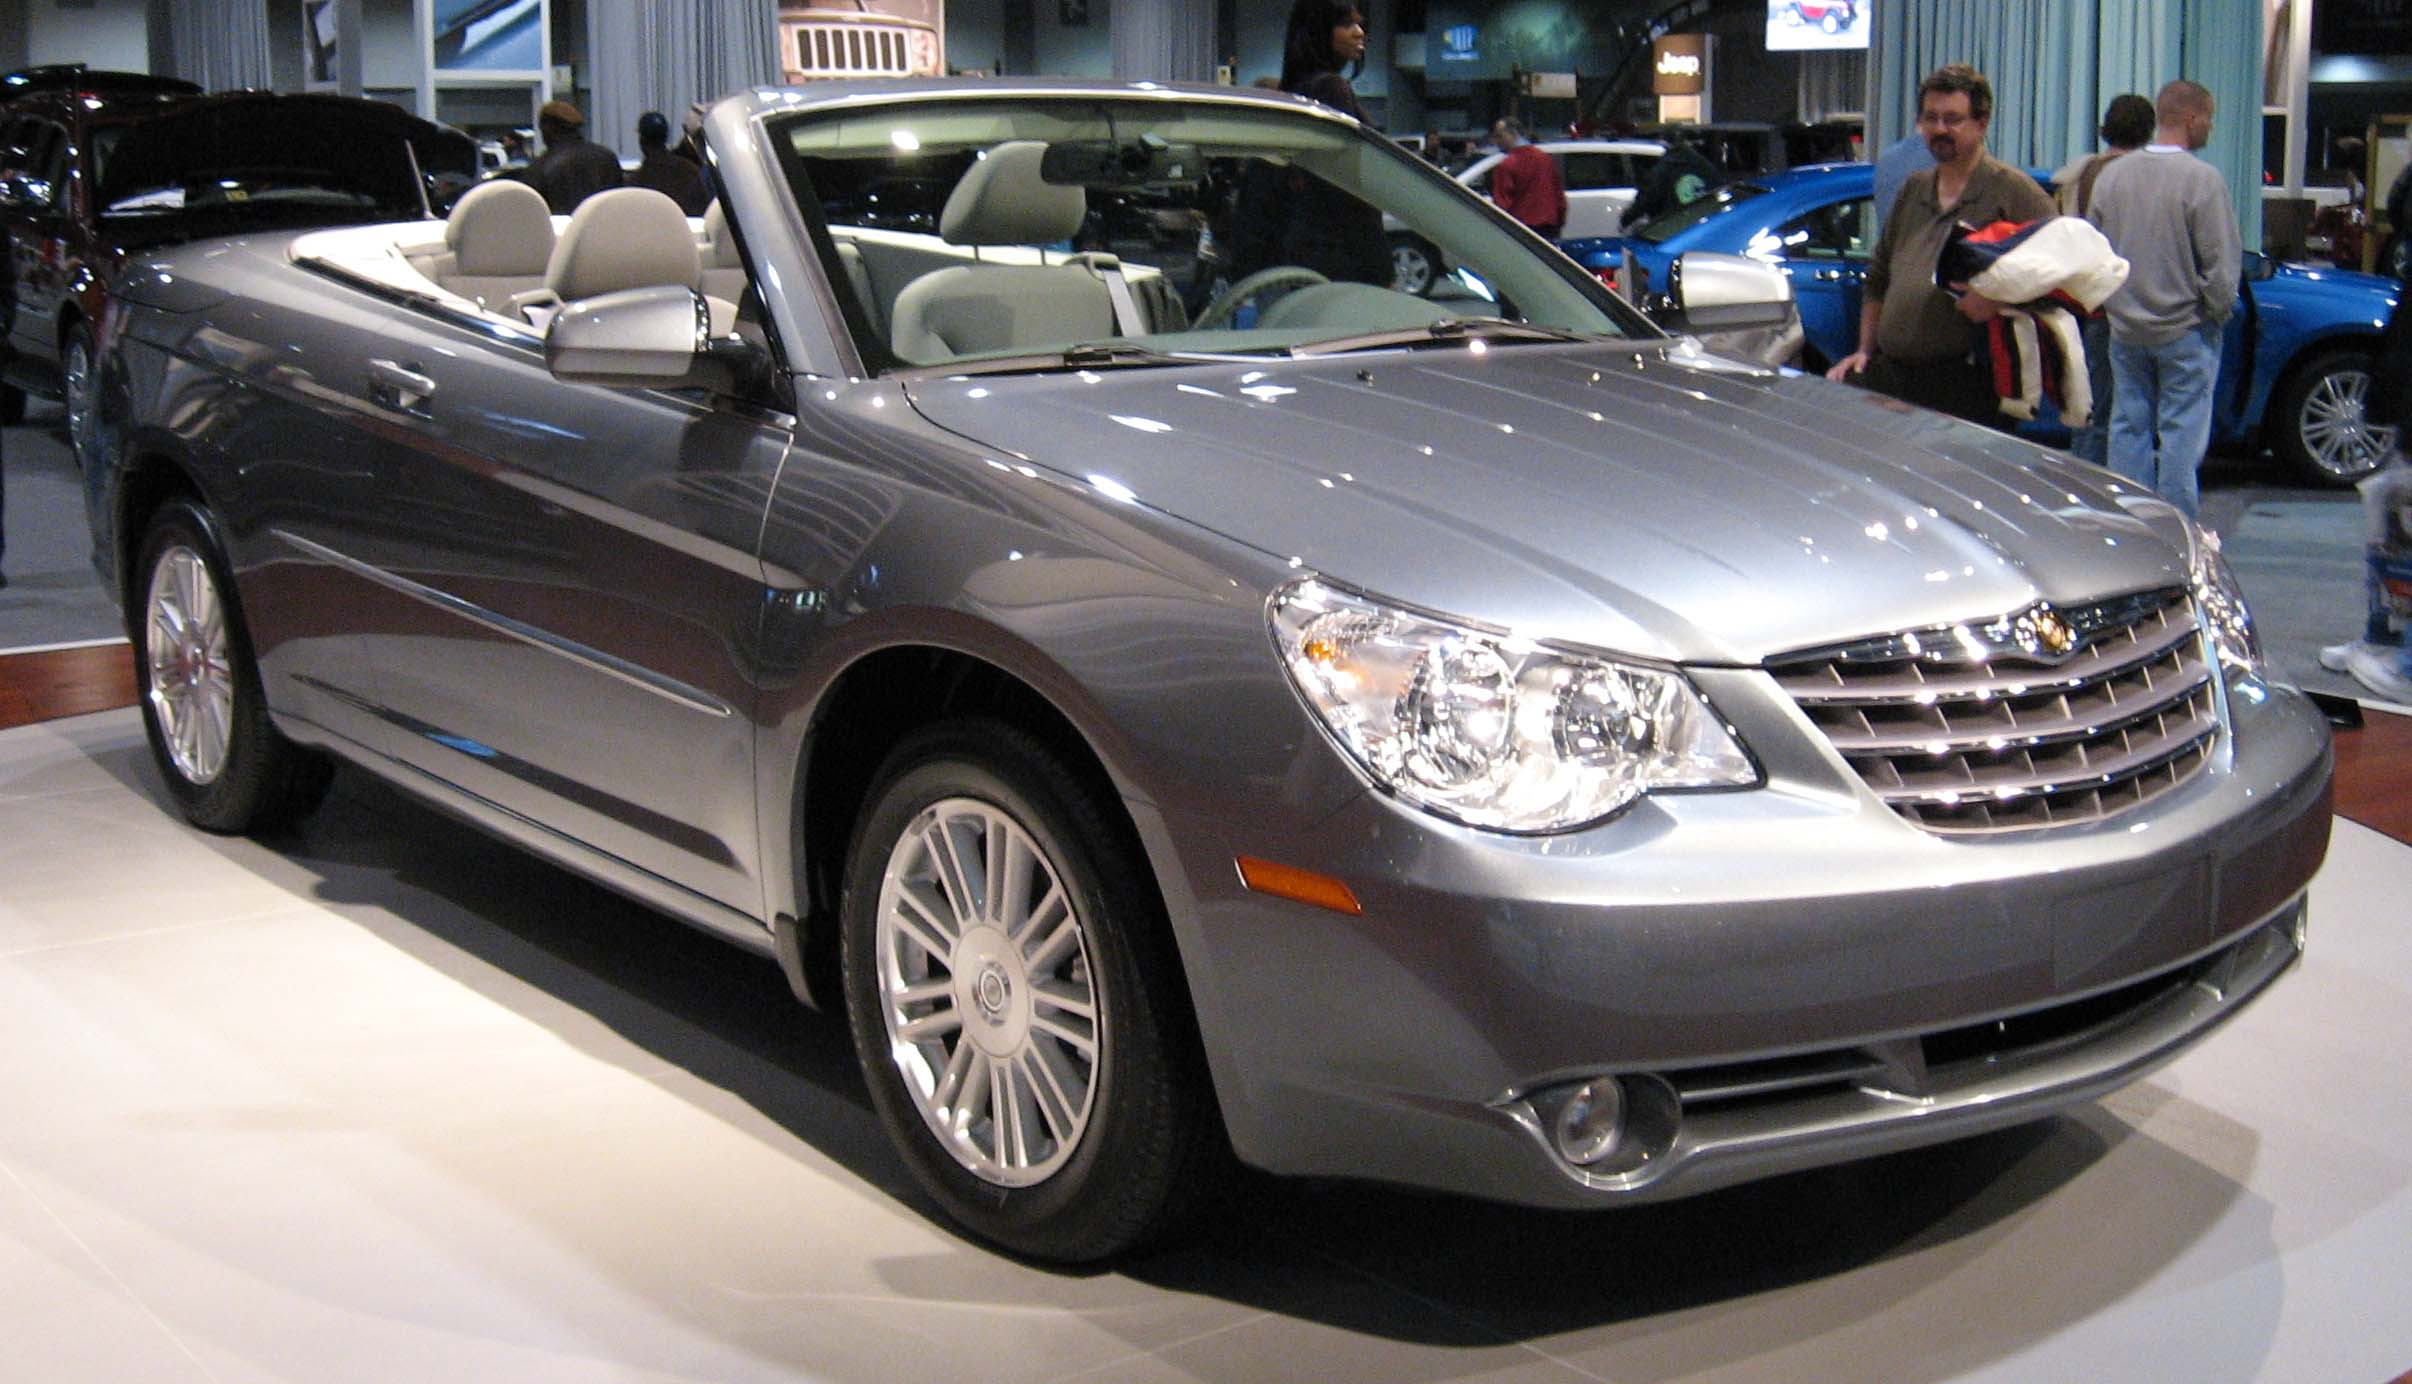 http://upload.wikimedia.org/wikipedia/commons/f/f2/2008-Chrysler-Sebring-convertible-DC.jpg